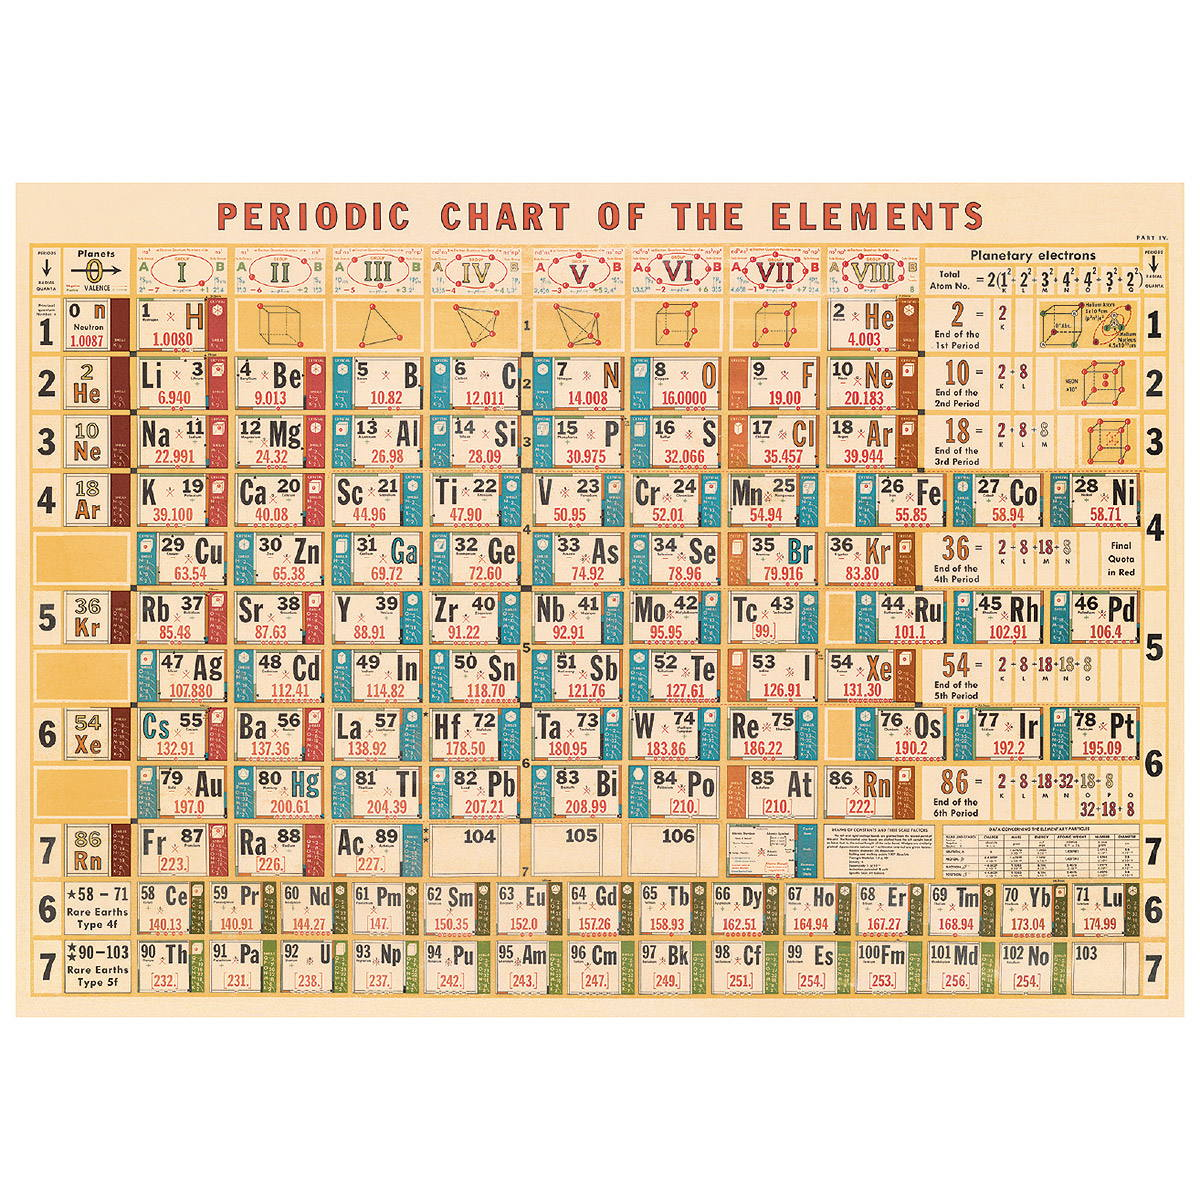 Periodic table chart driverlayer search engine for 1 20 elements in periodic table